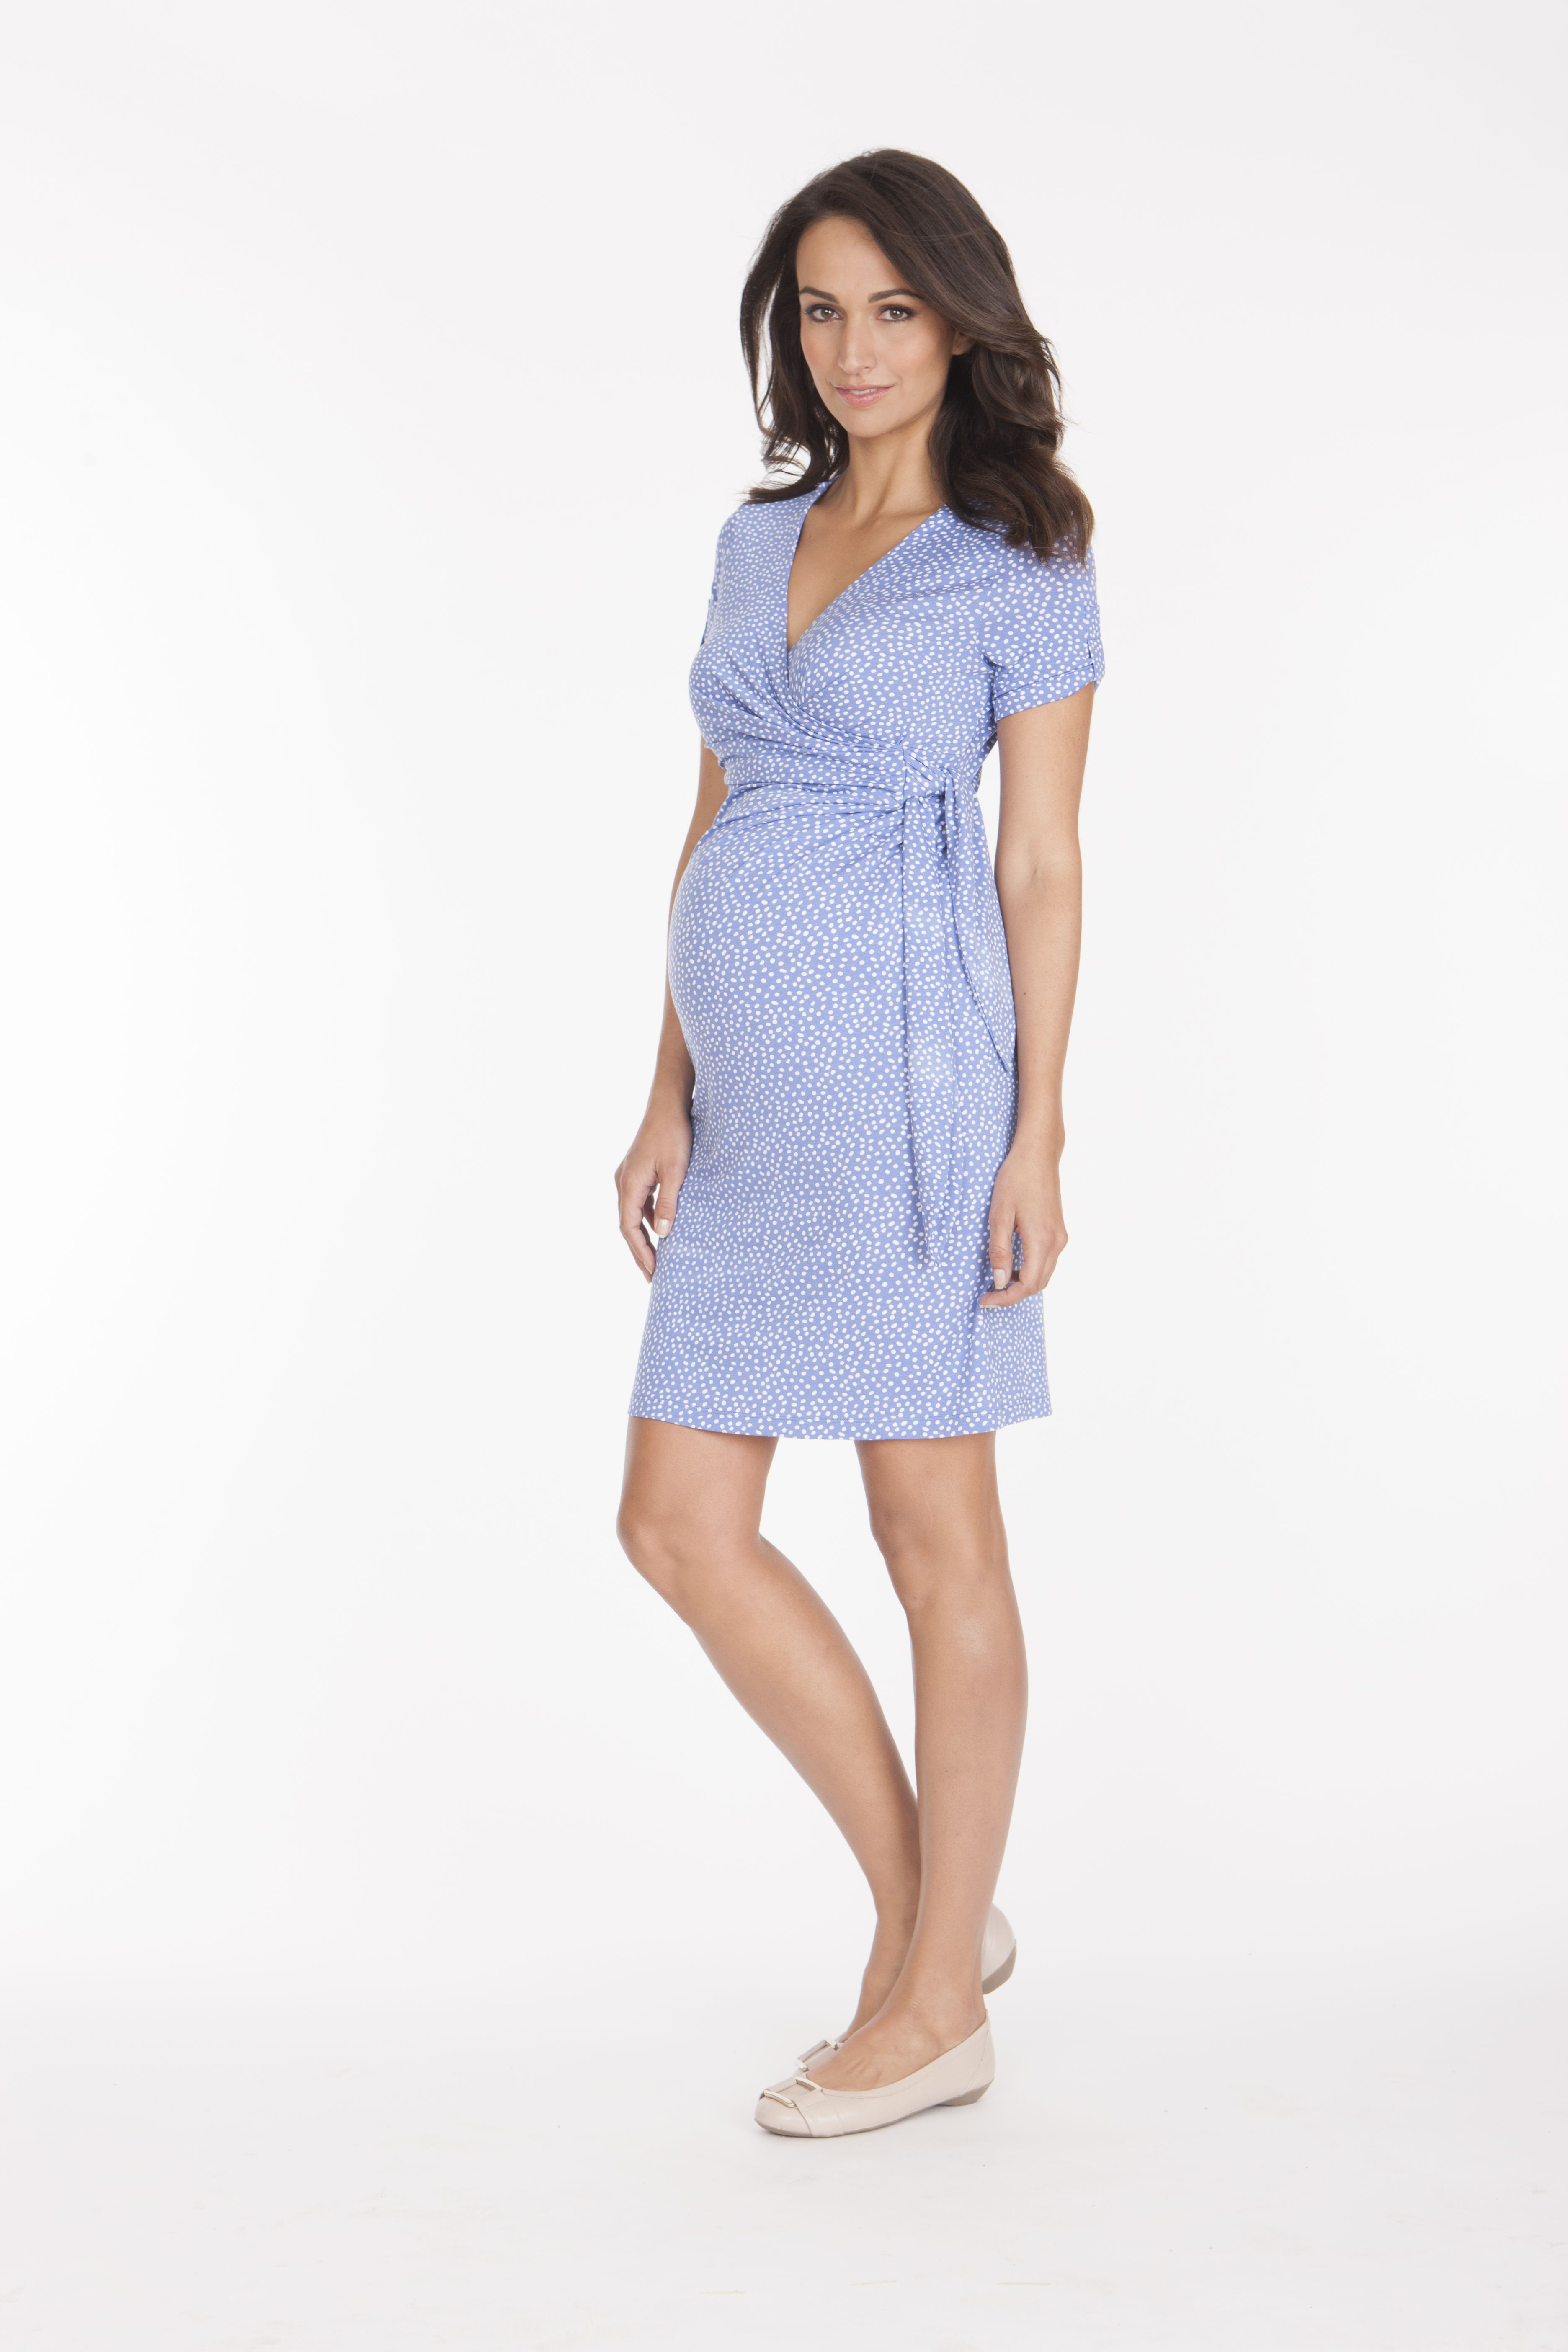 Perfect for a baby shower or any occasion worn by kate middleton perfect for a baby shower or any occasion worn by kate middleton the renata pregnancy dressbreastfeeding ombrellifo Gallery